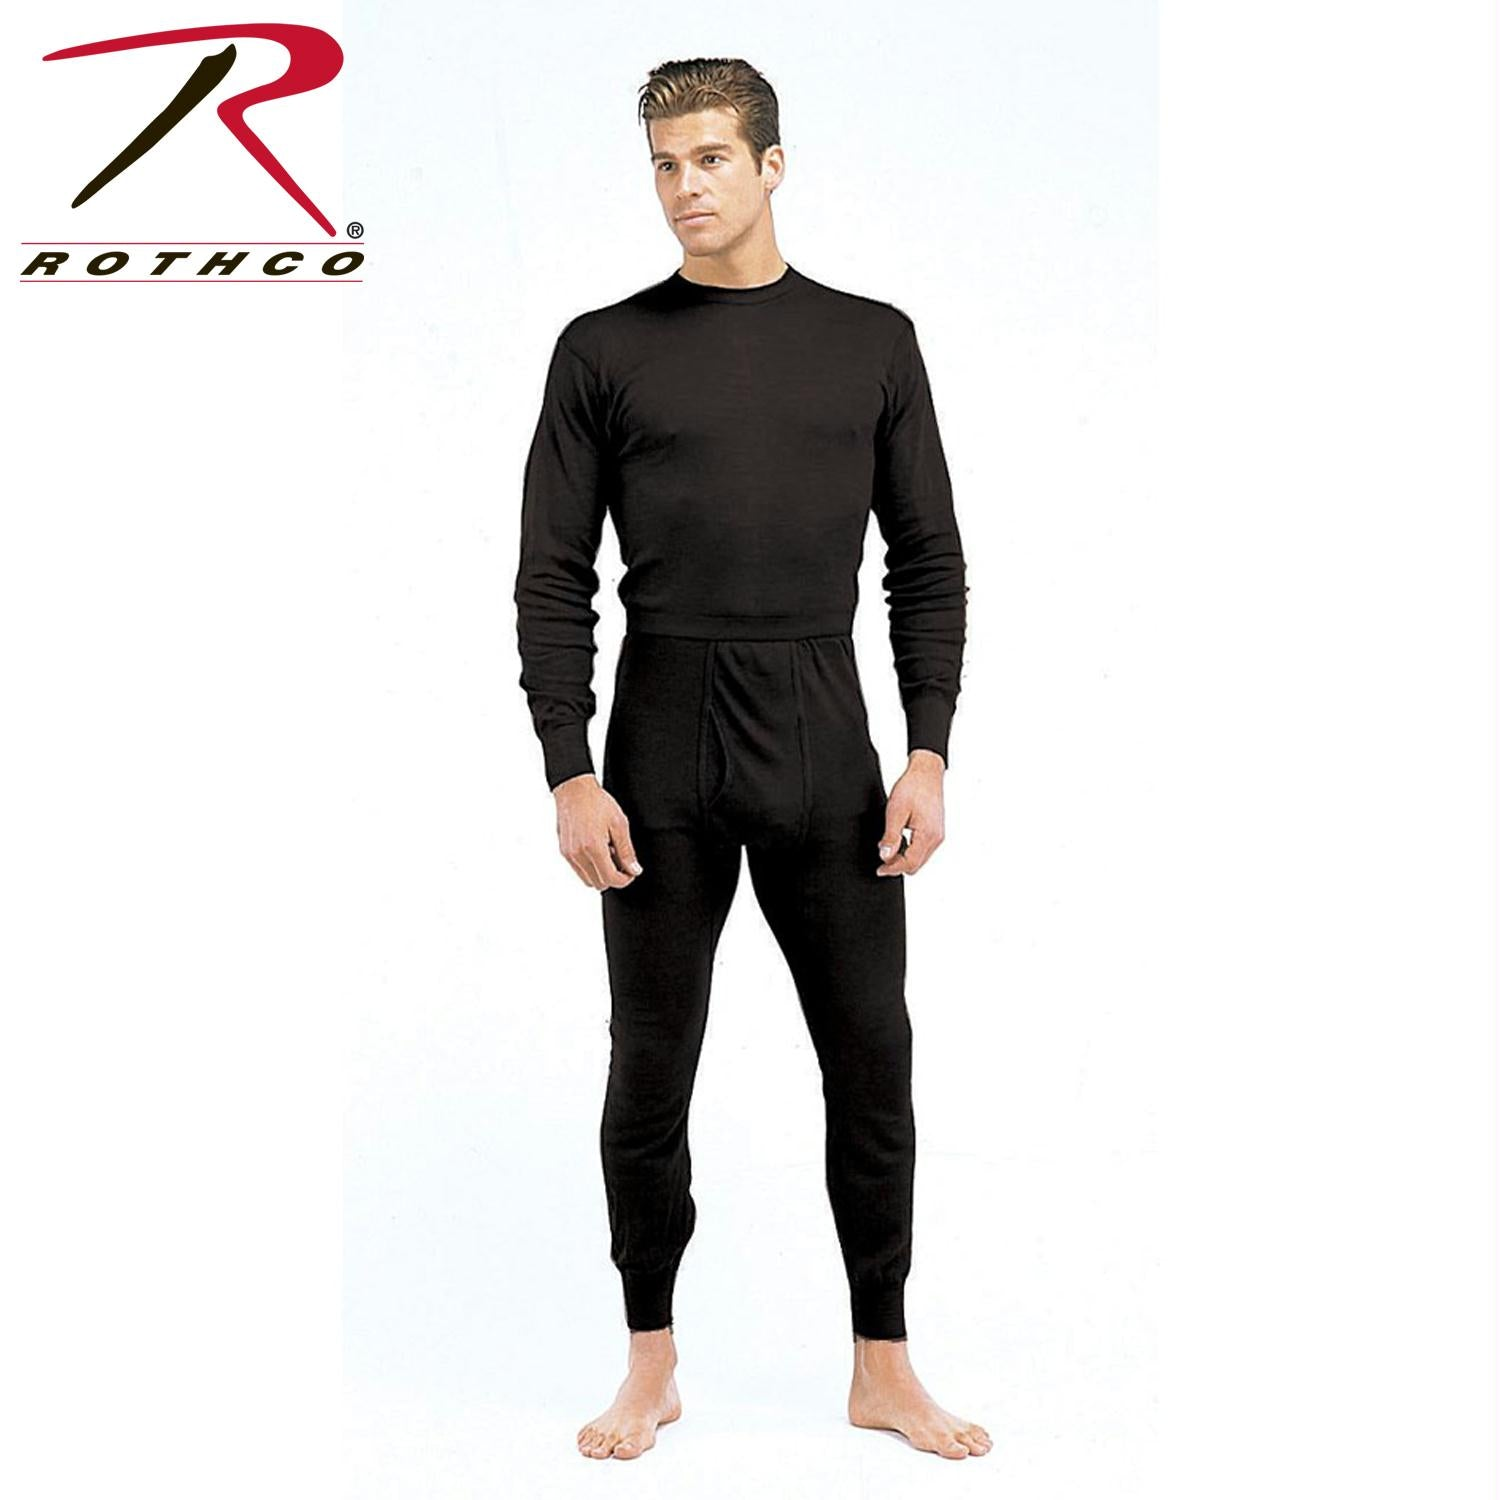 Rothco Single Layer Poly Underwear Tops - Black / S